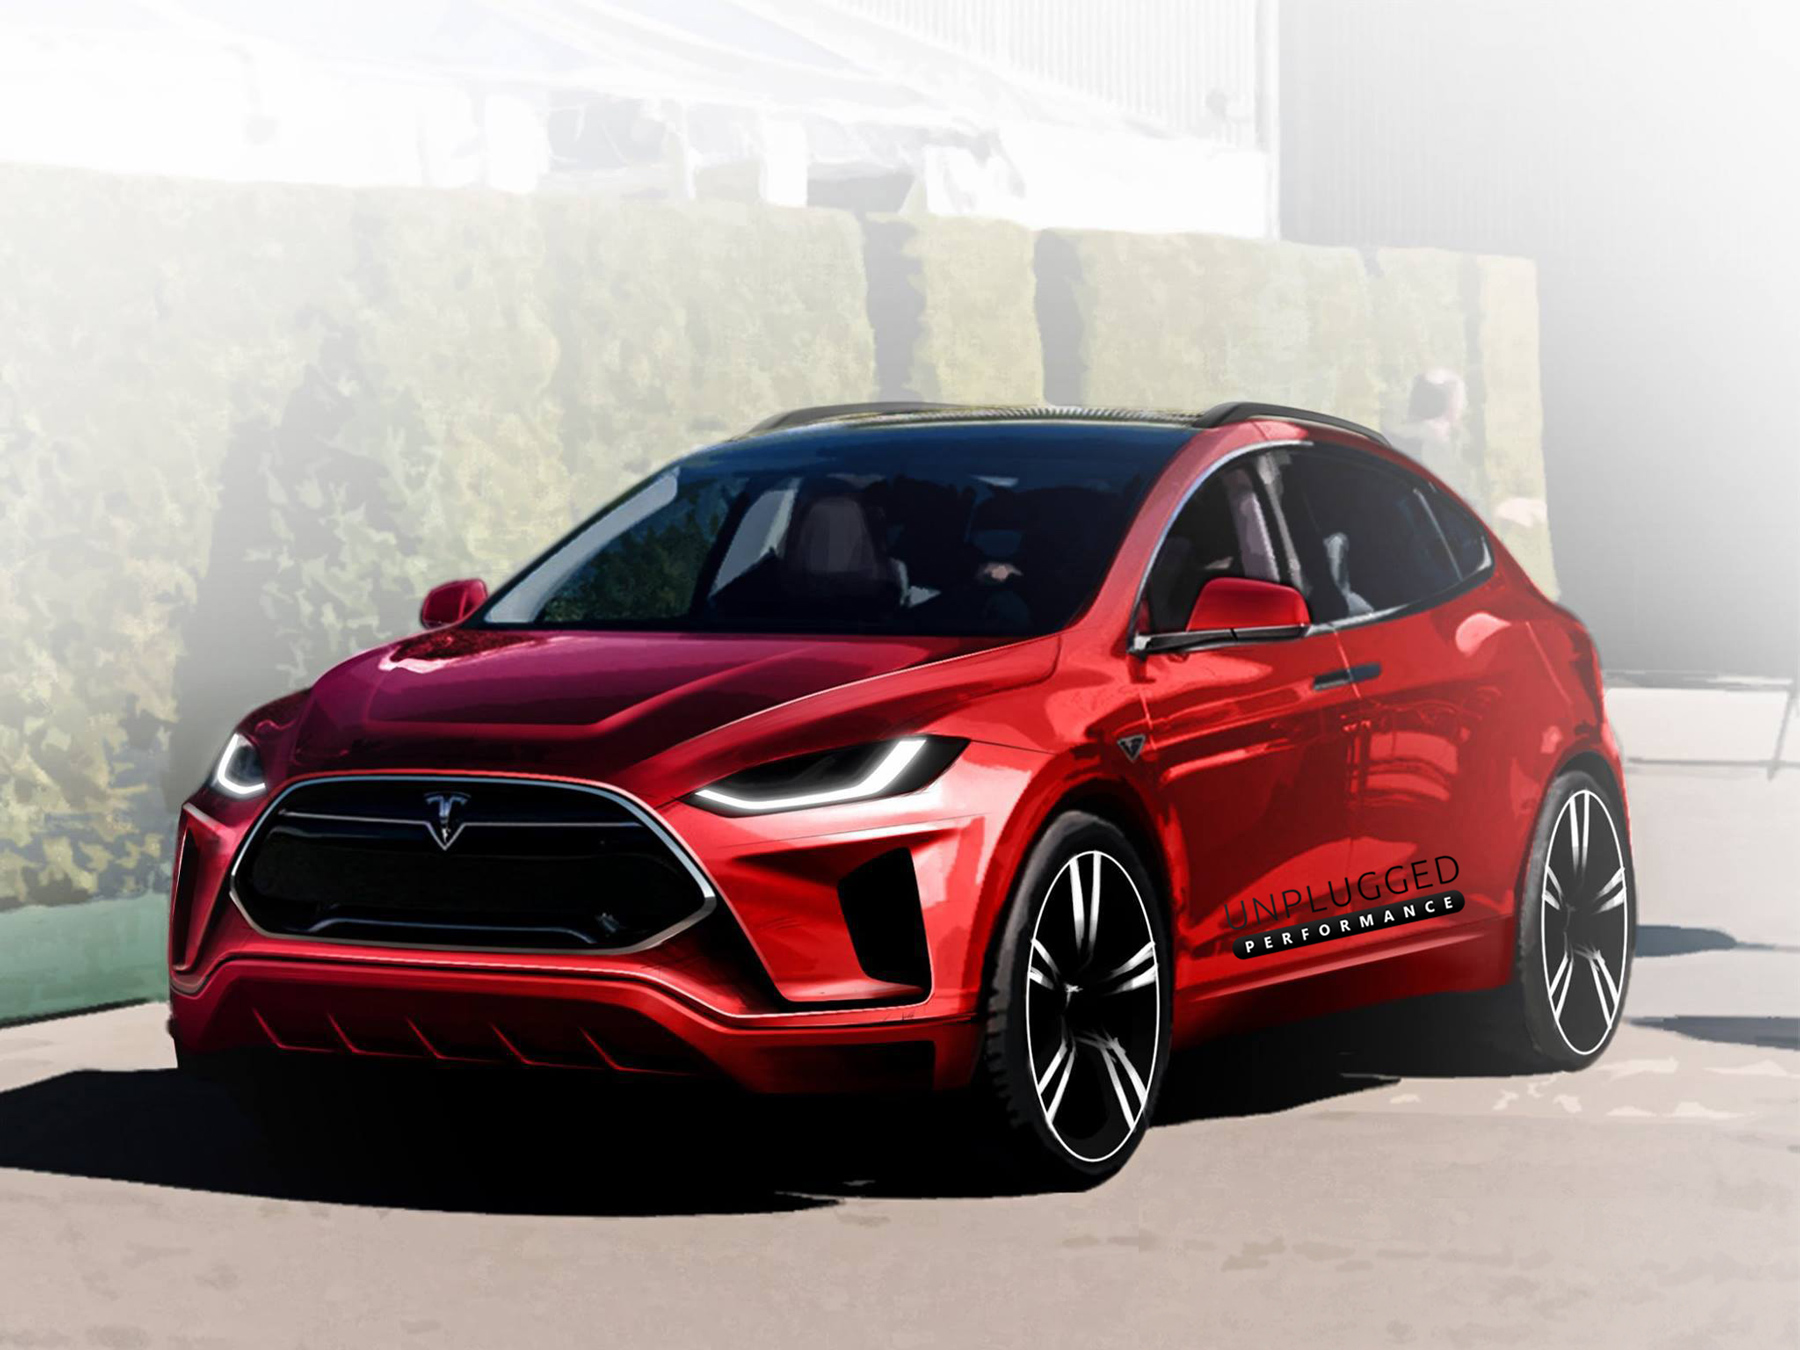 Unplugged Performance 750 Hp Tesla Model X Suv Concept Debut